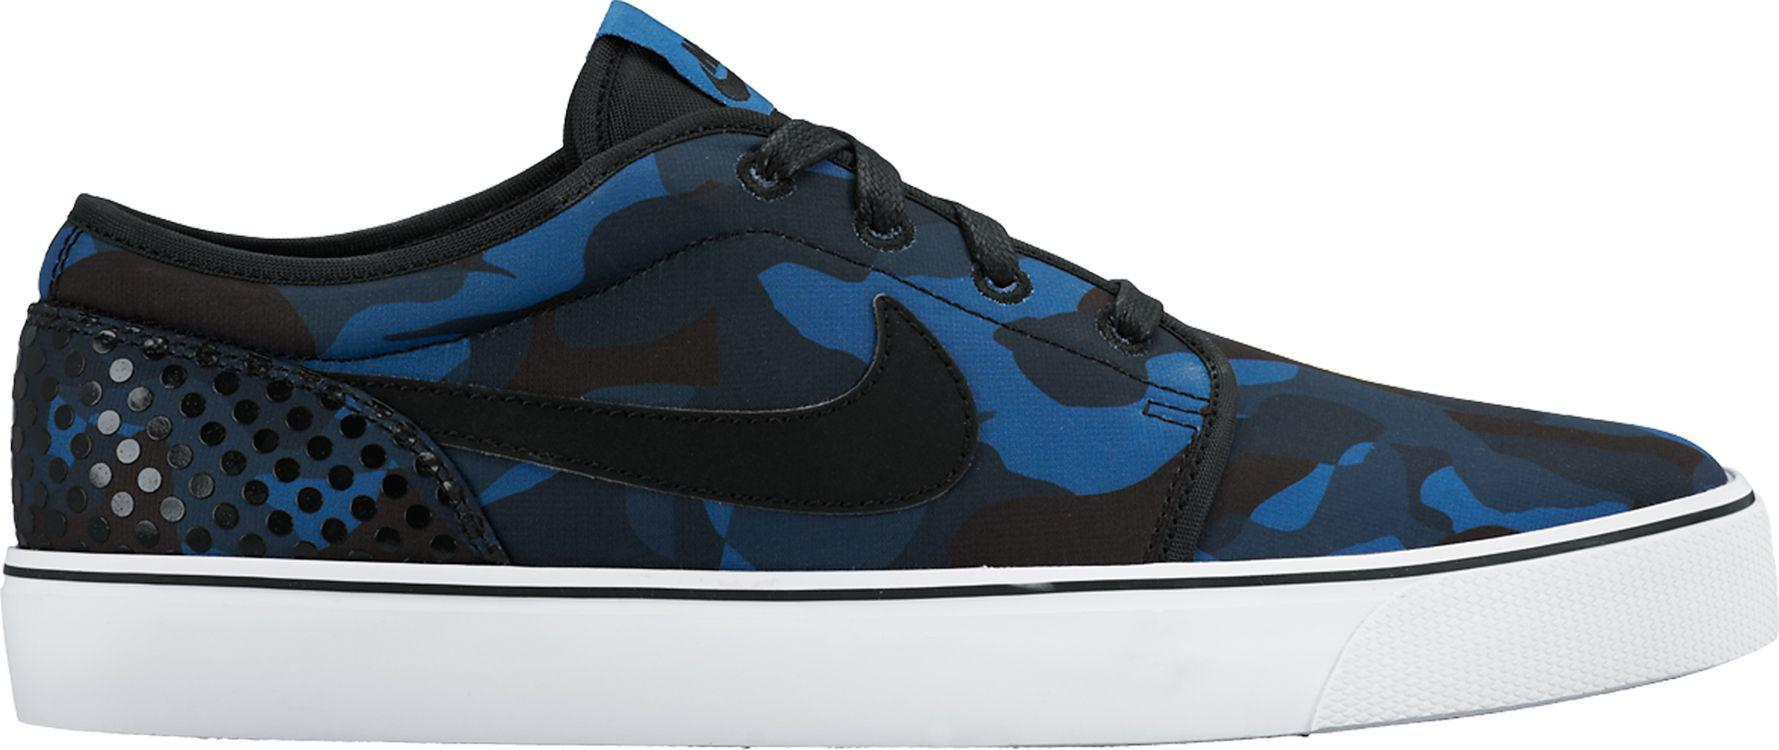 2ec6b7bf183 Lyst - Nike Toki Low Textile Prt Shoes in Black for Men